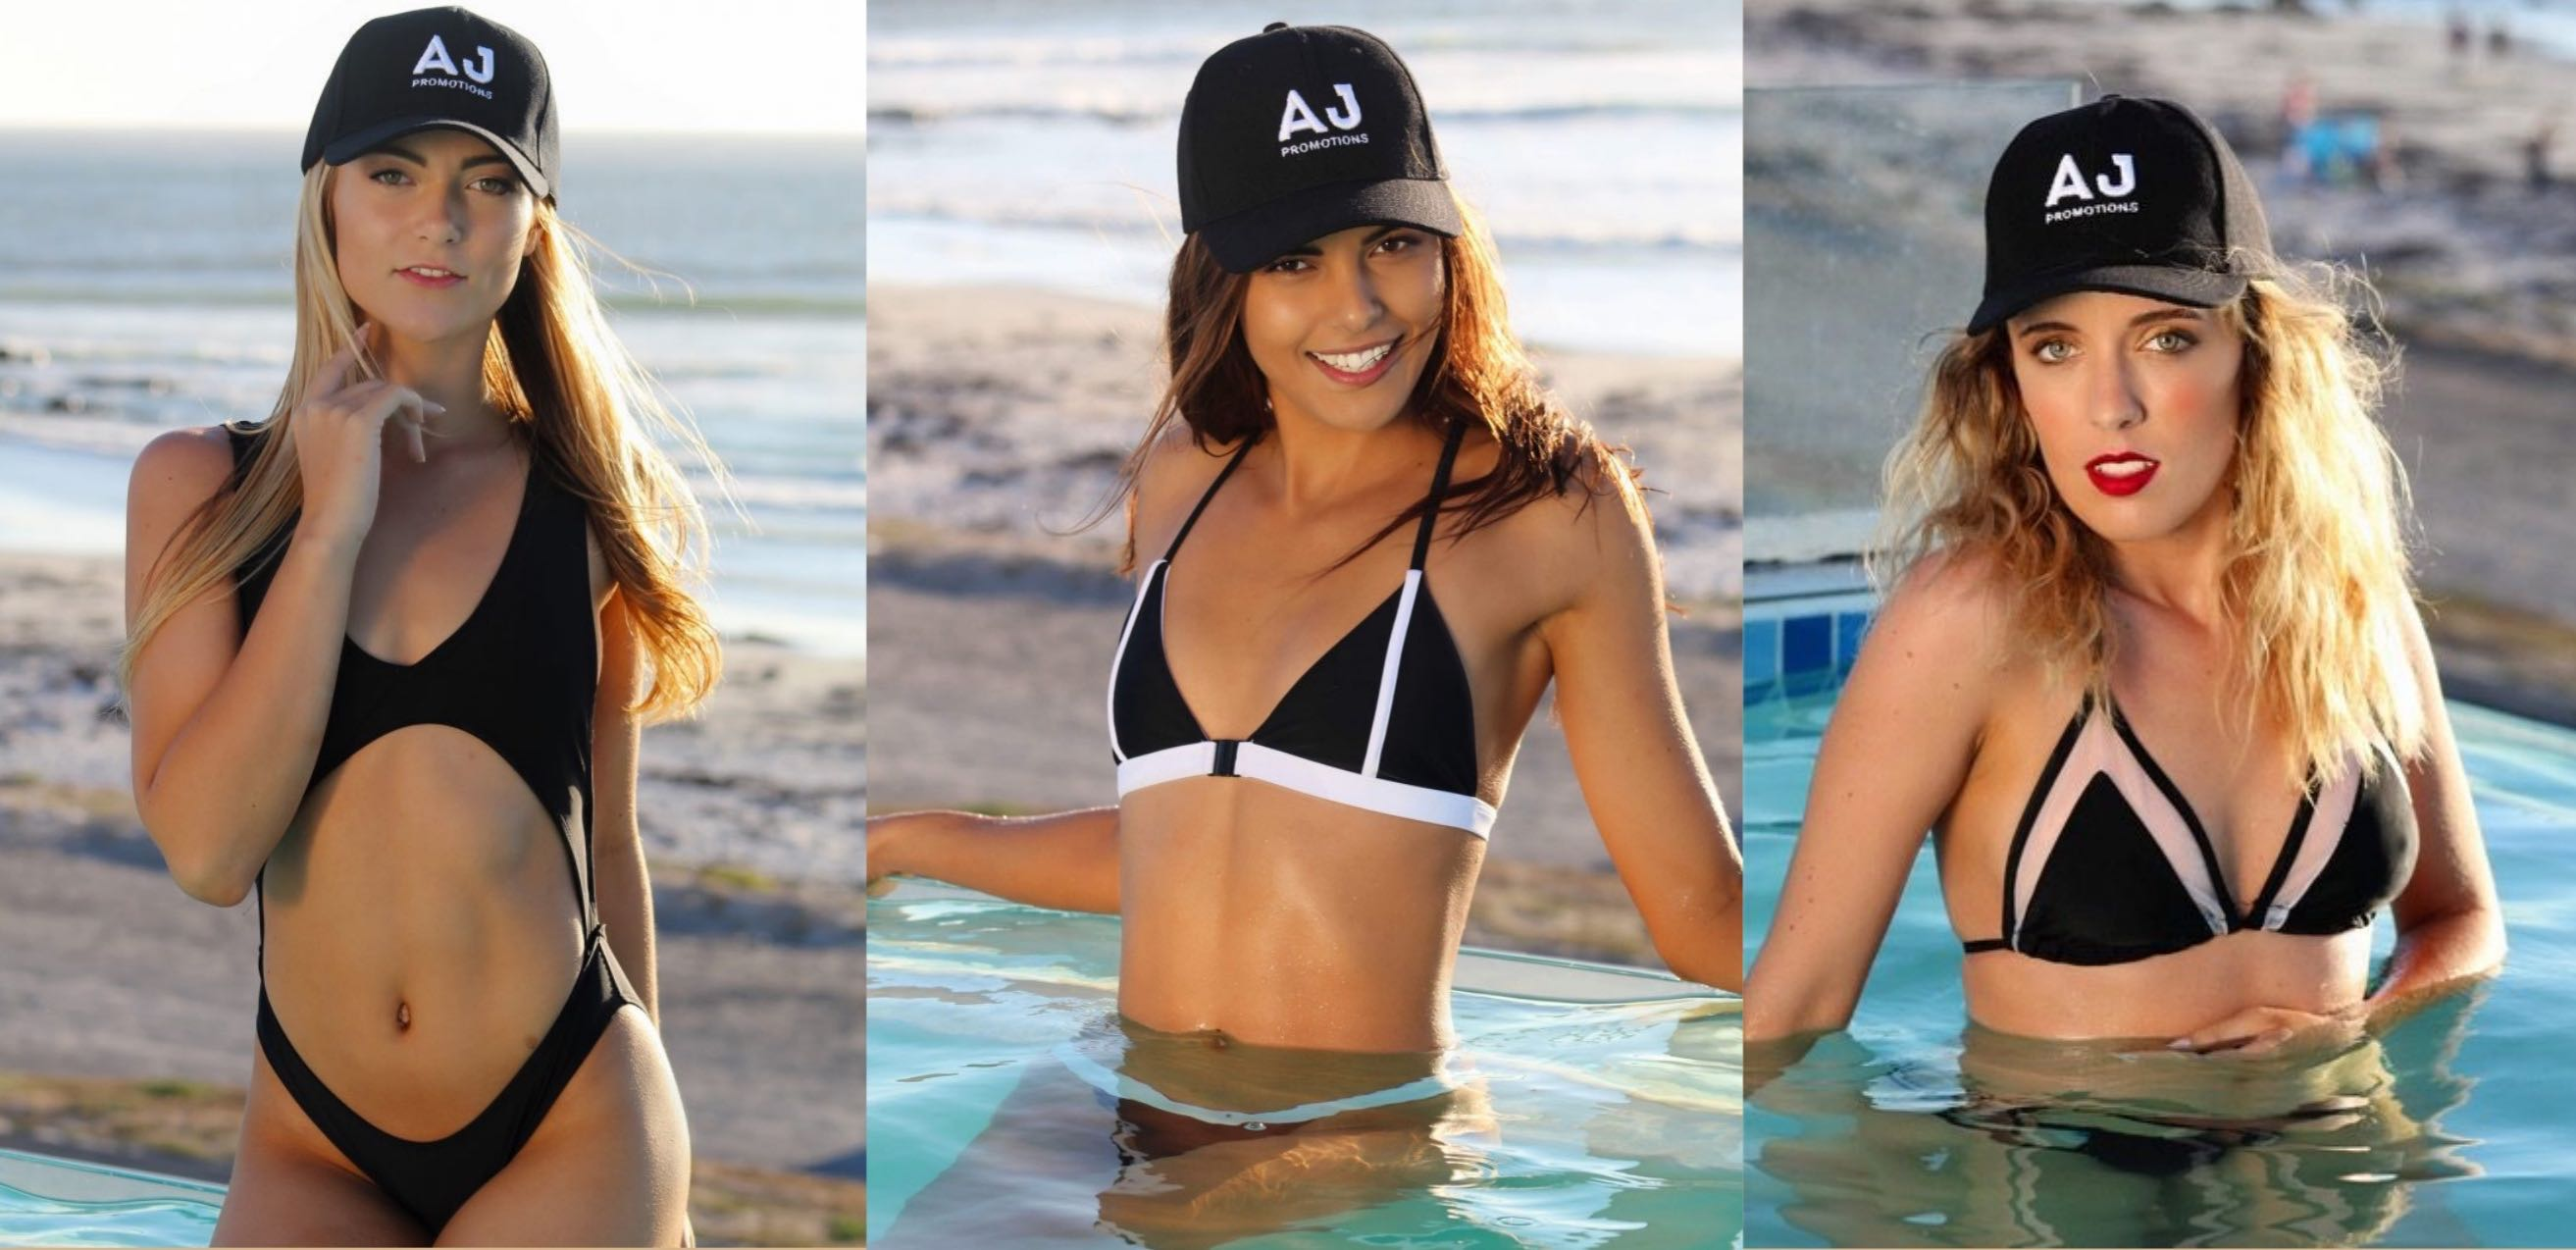 Meet your Top 6 models in the 2018 AJ Promotions Model Search